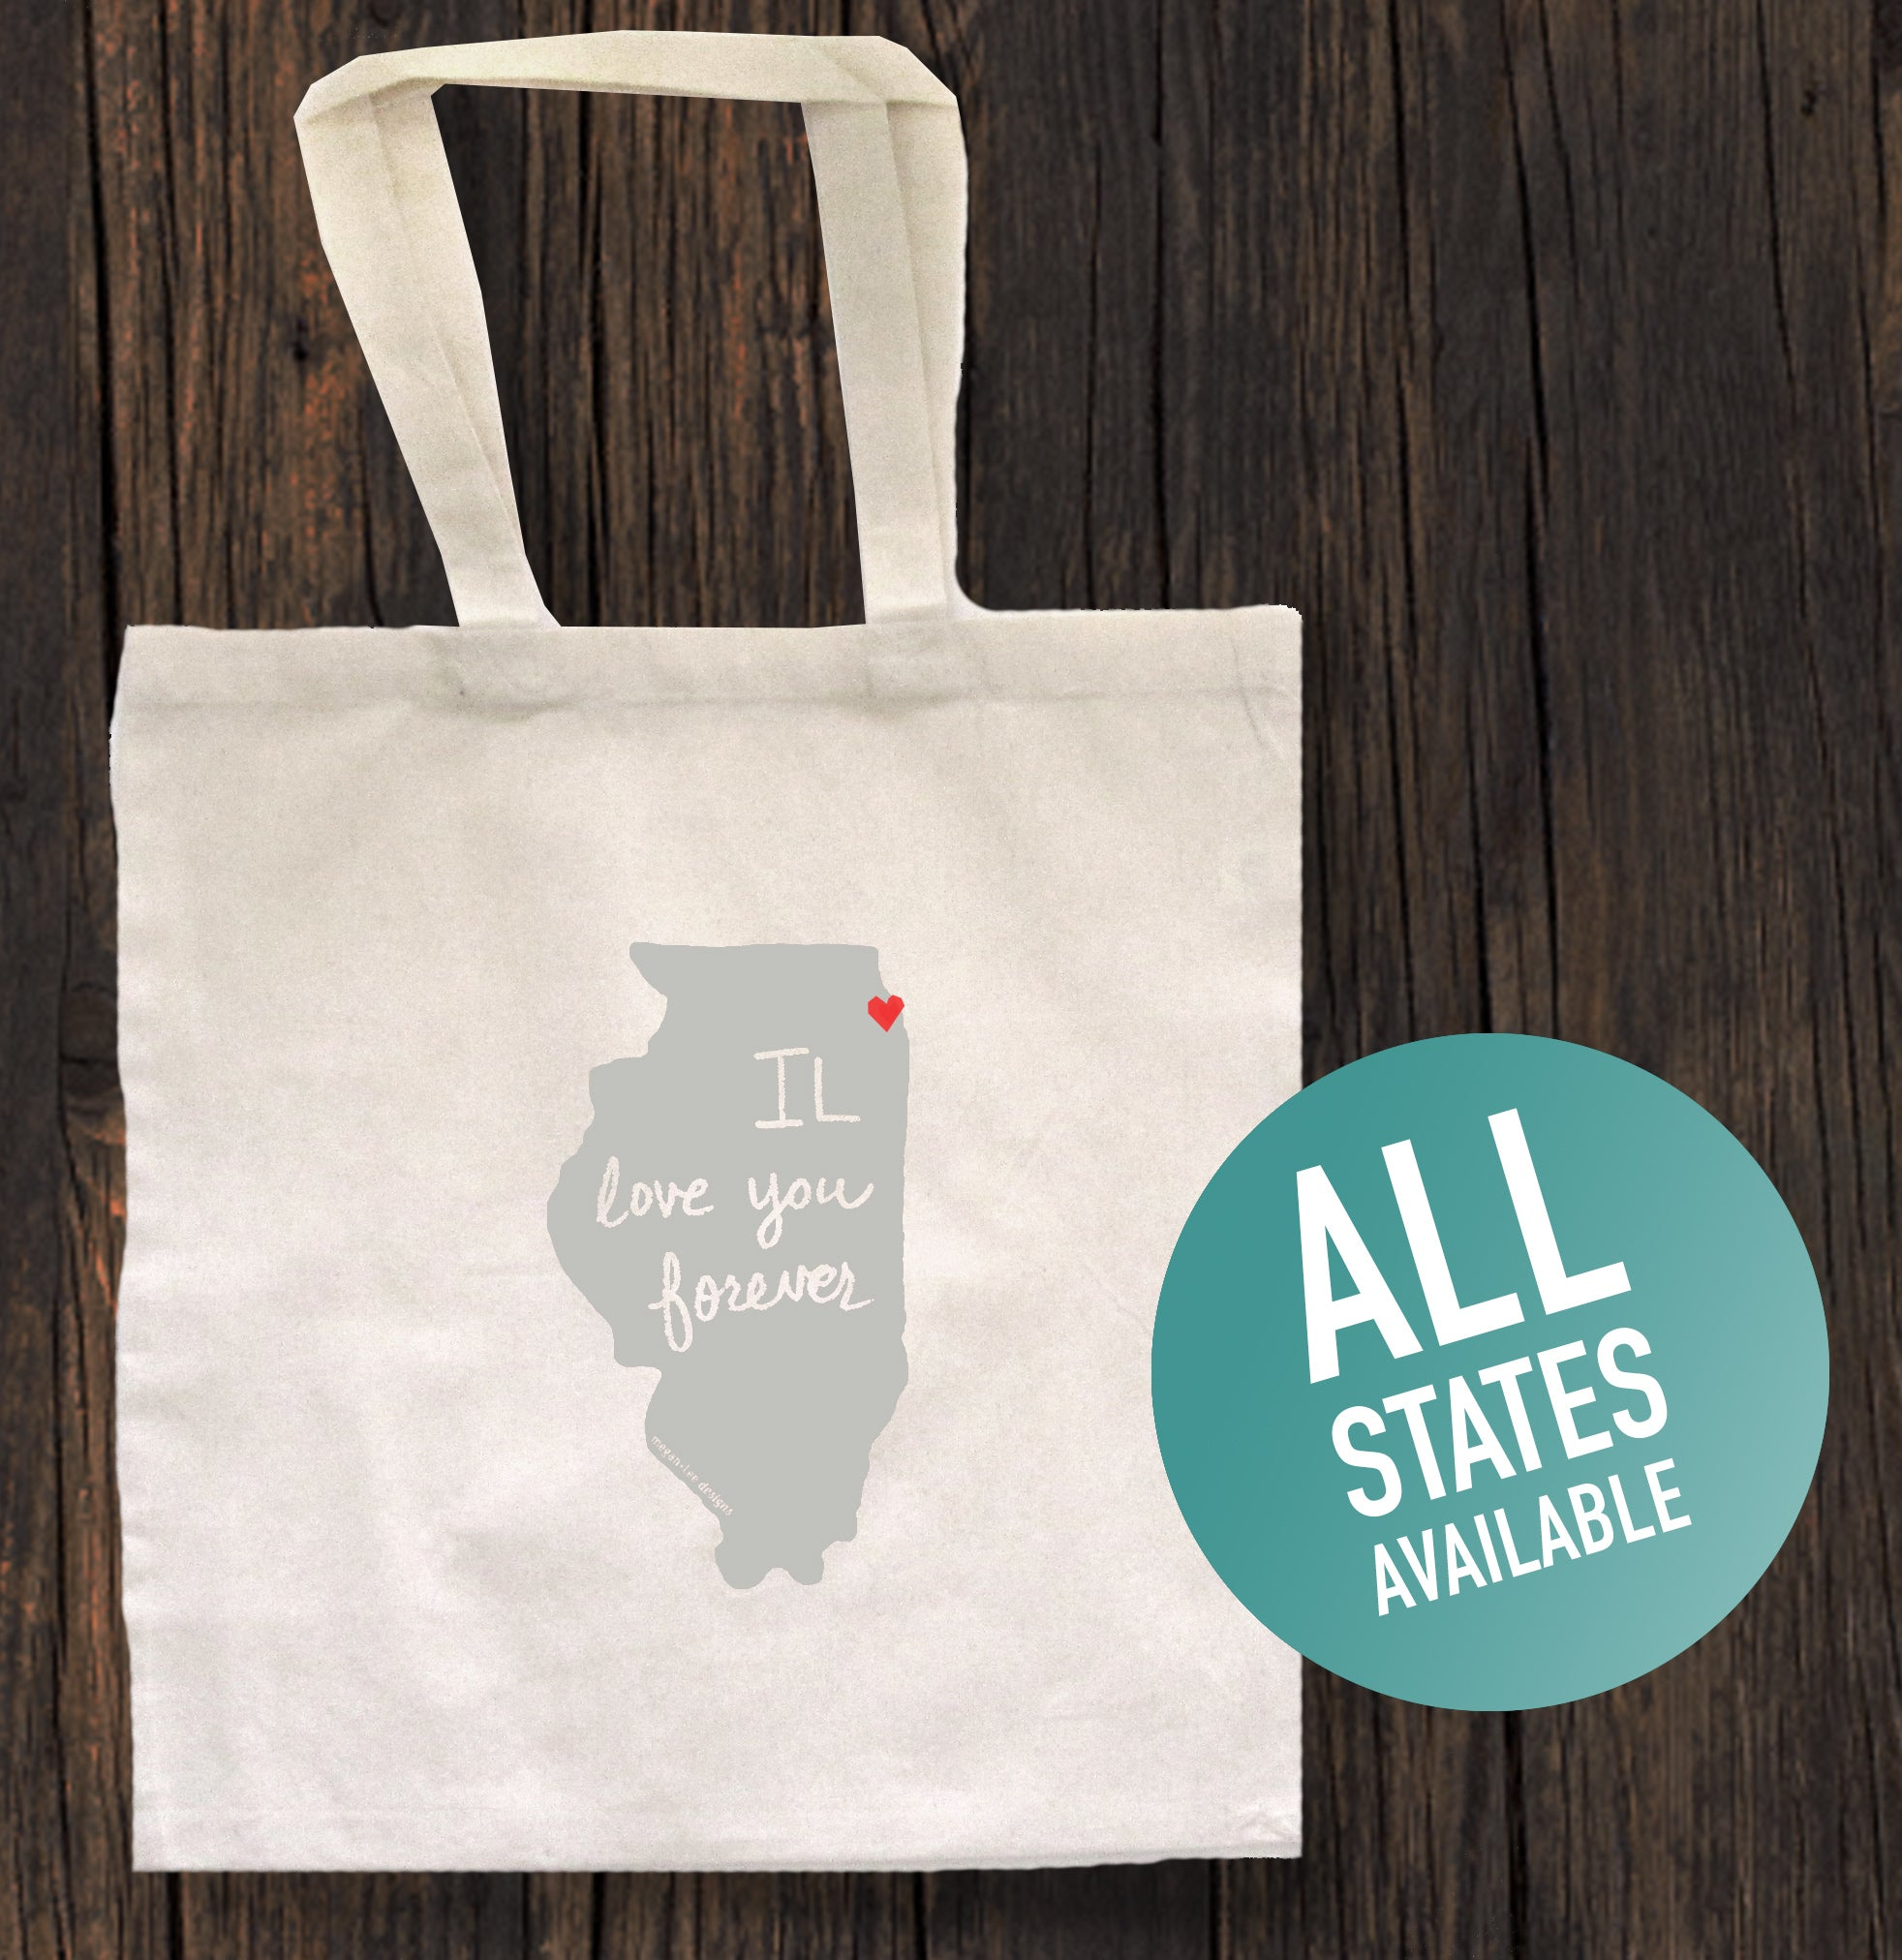 State of Mind Totebag - All 50 states available